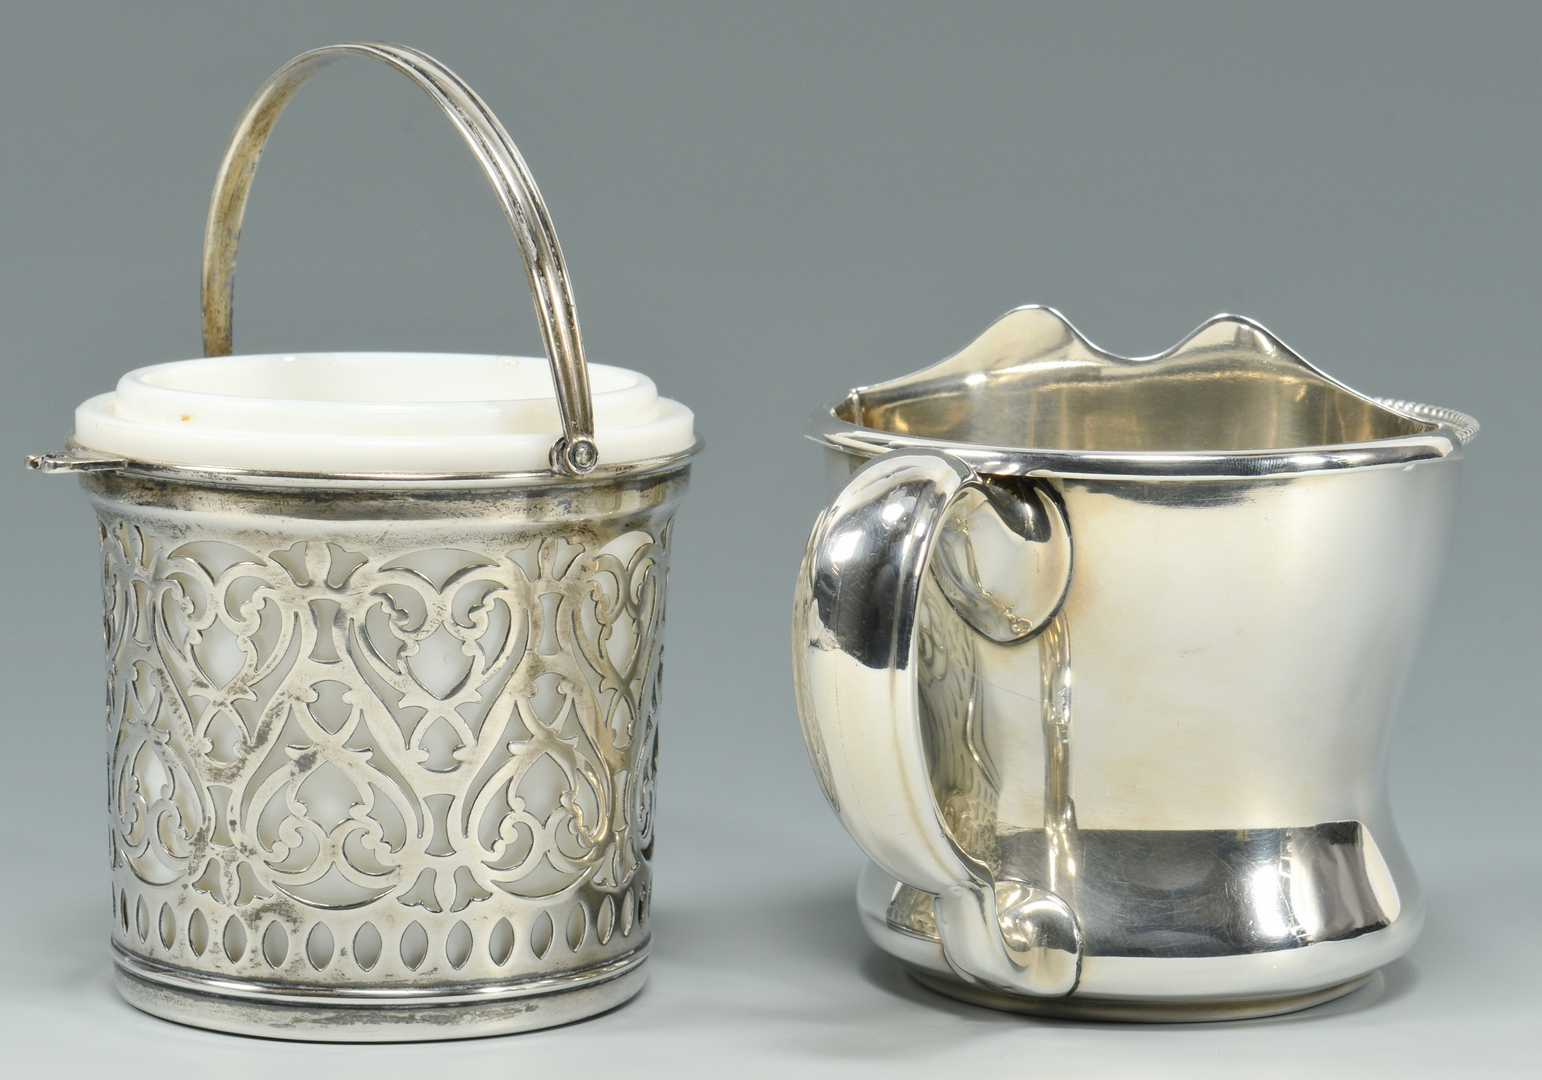 Lot 3088205: Rare Gorham Sterling Moustache Cup plus basket